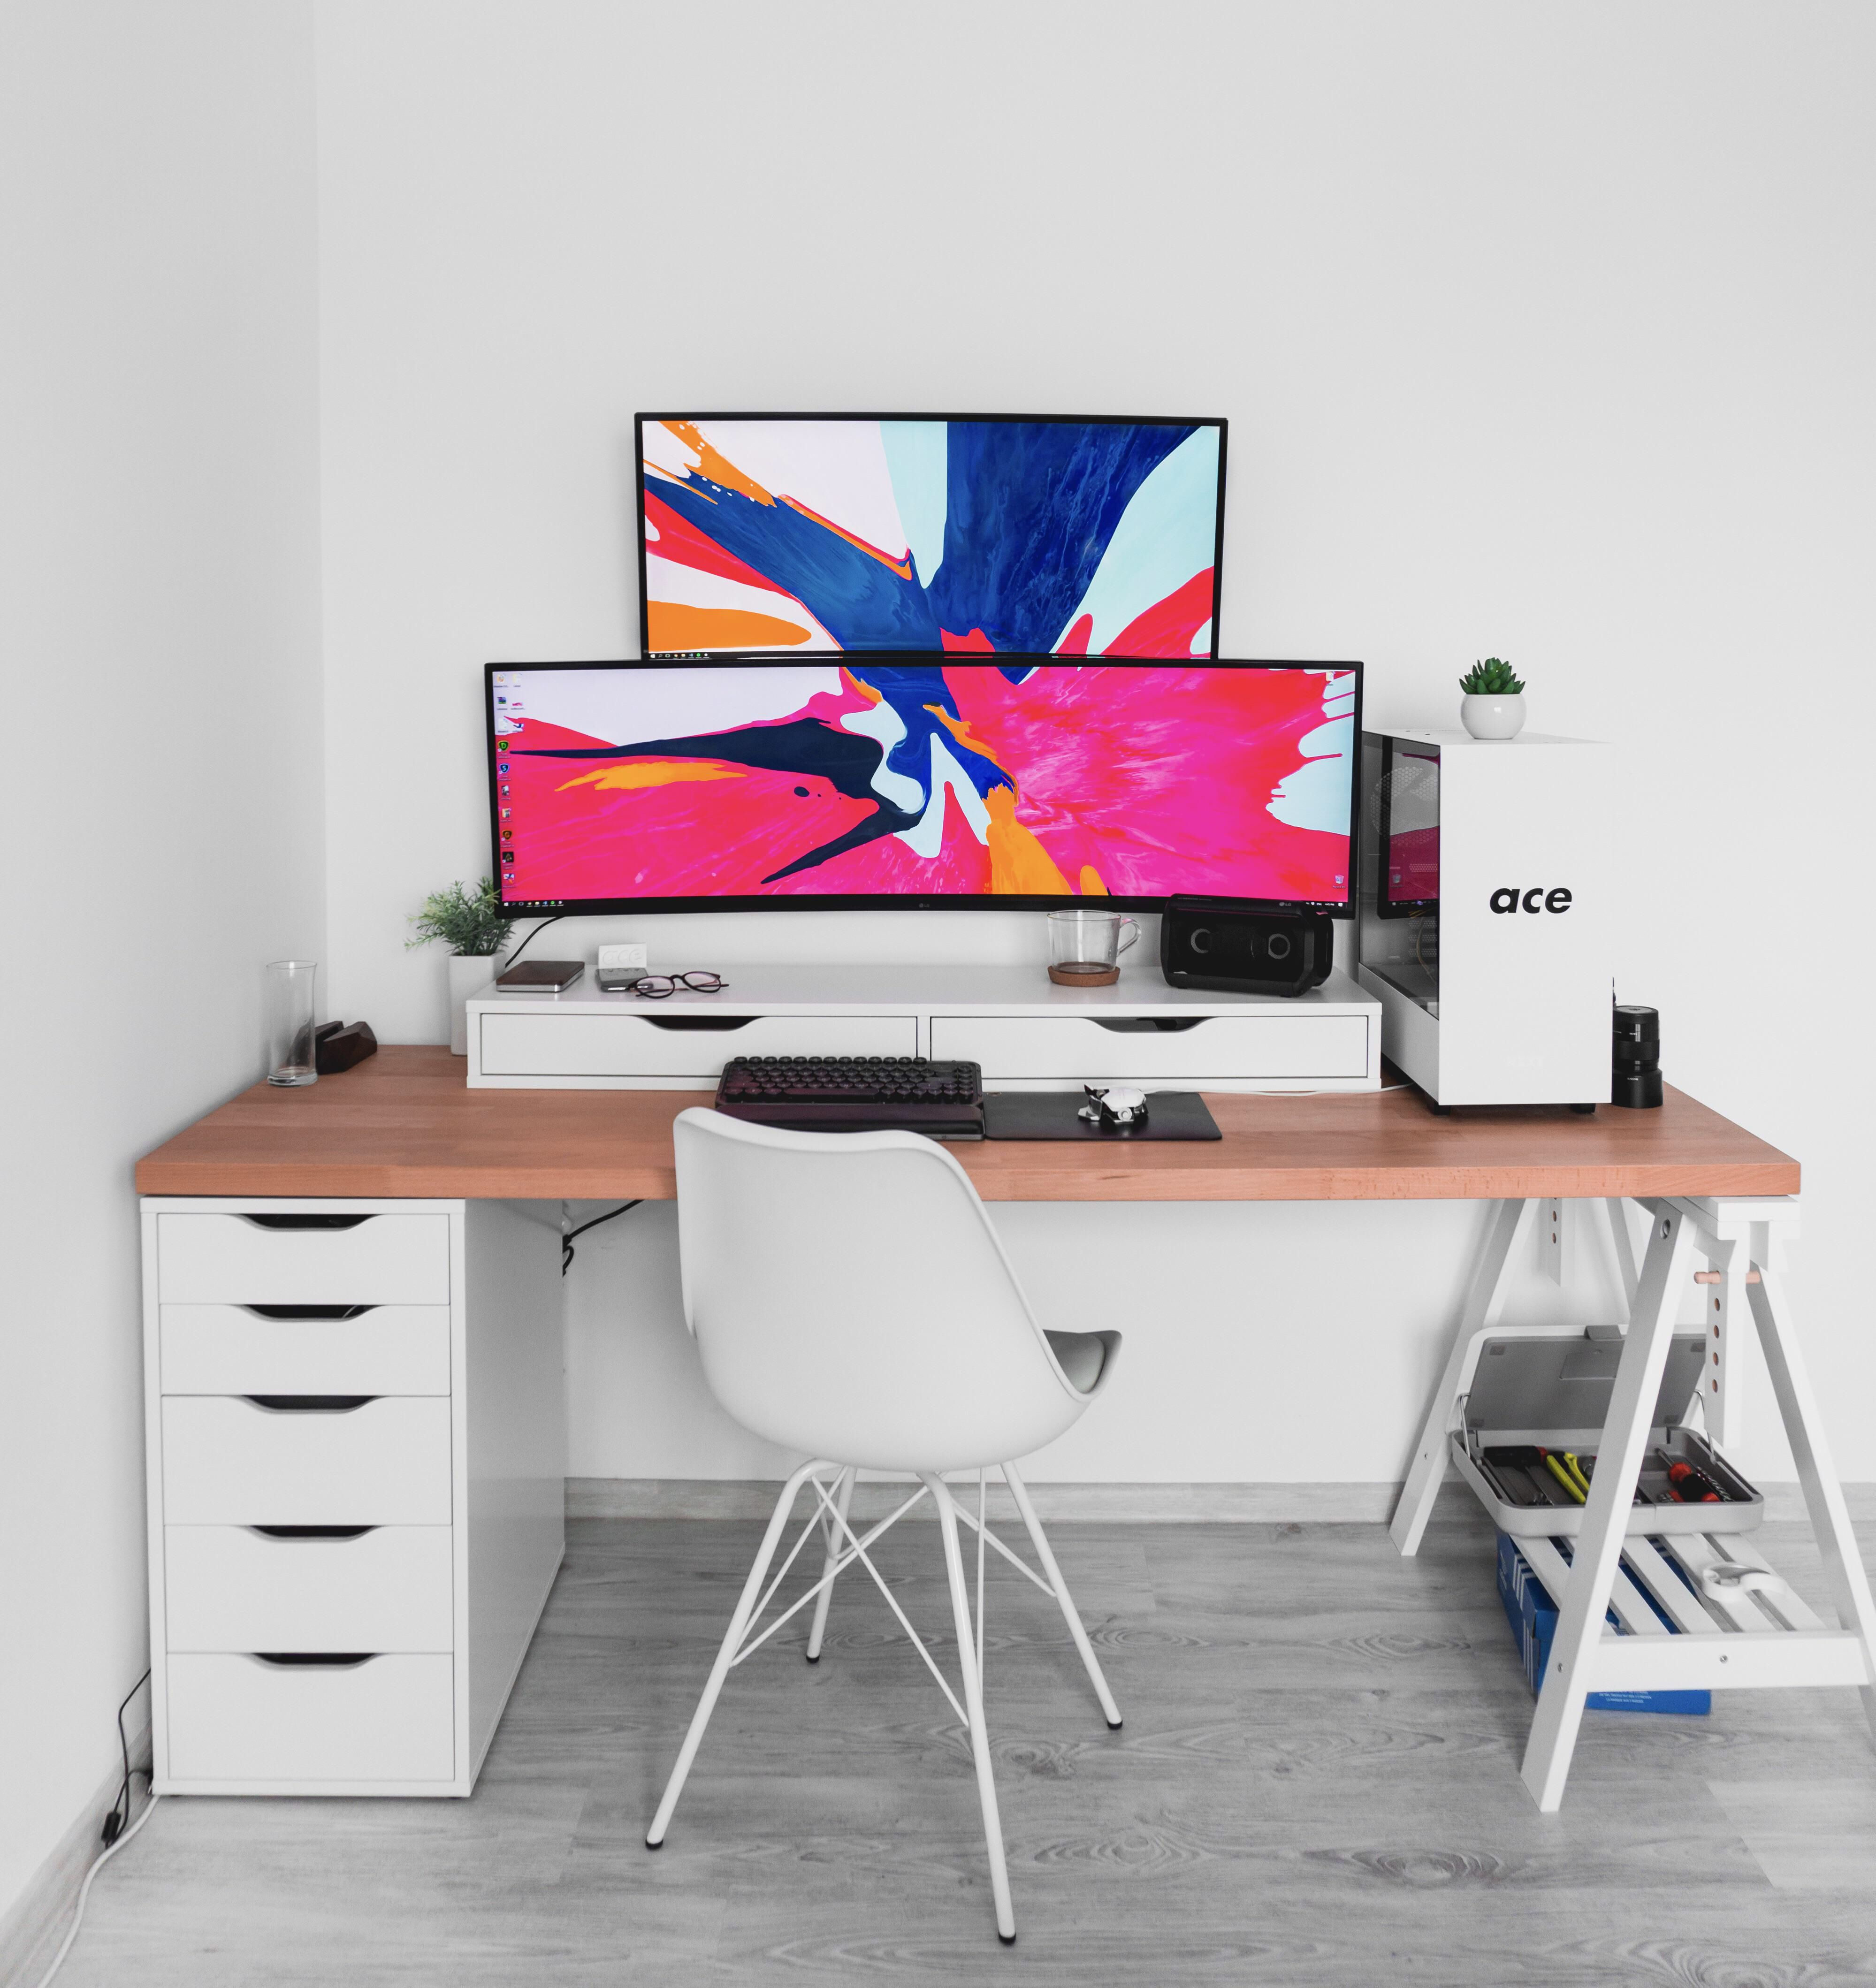 Idea By Vip On S P A C E Home Office Setup Clean